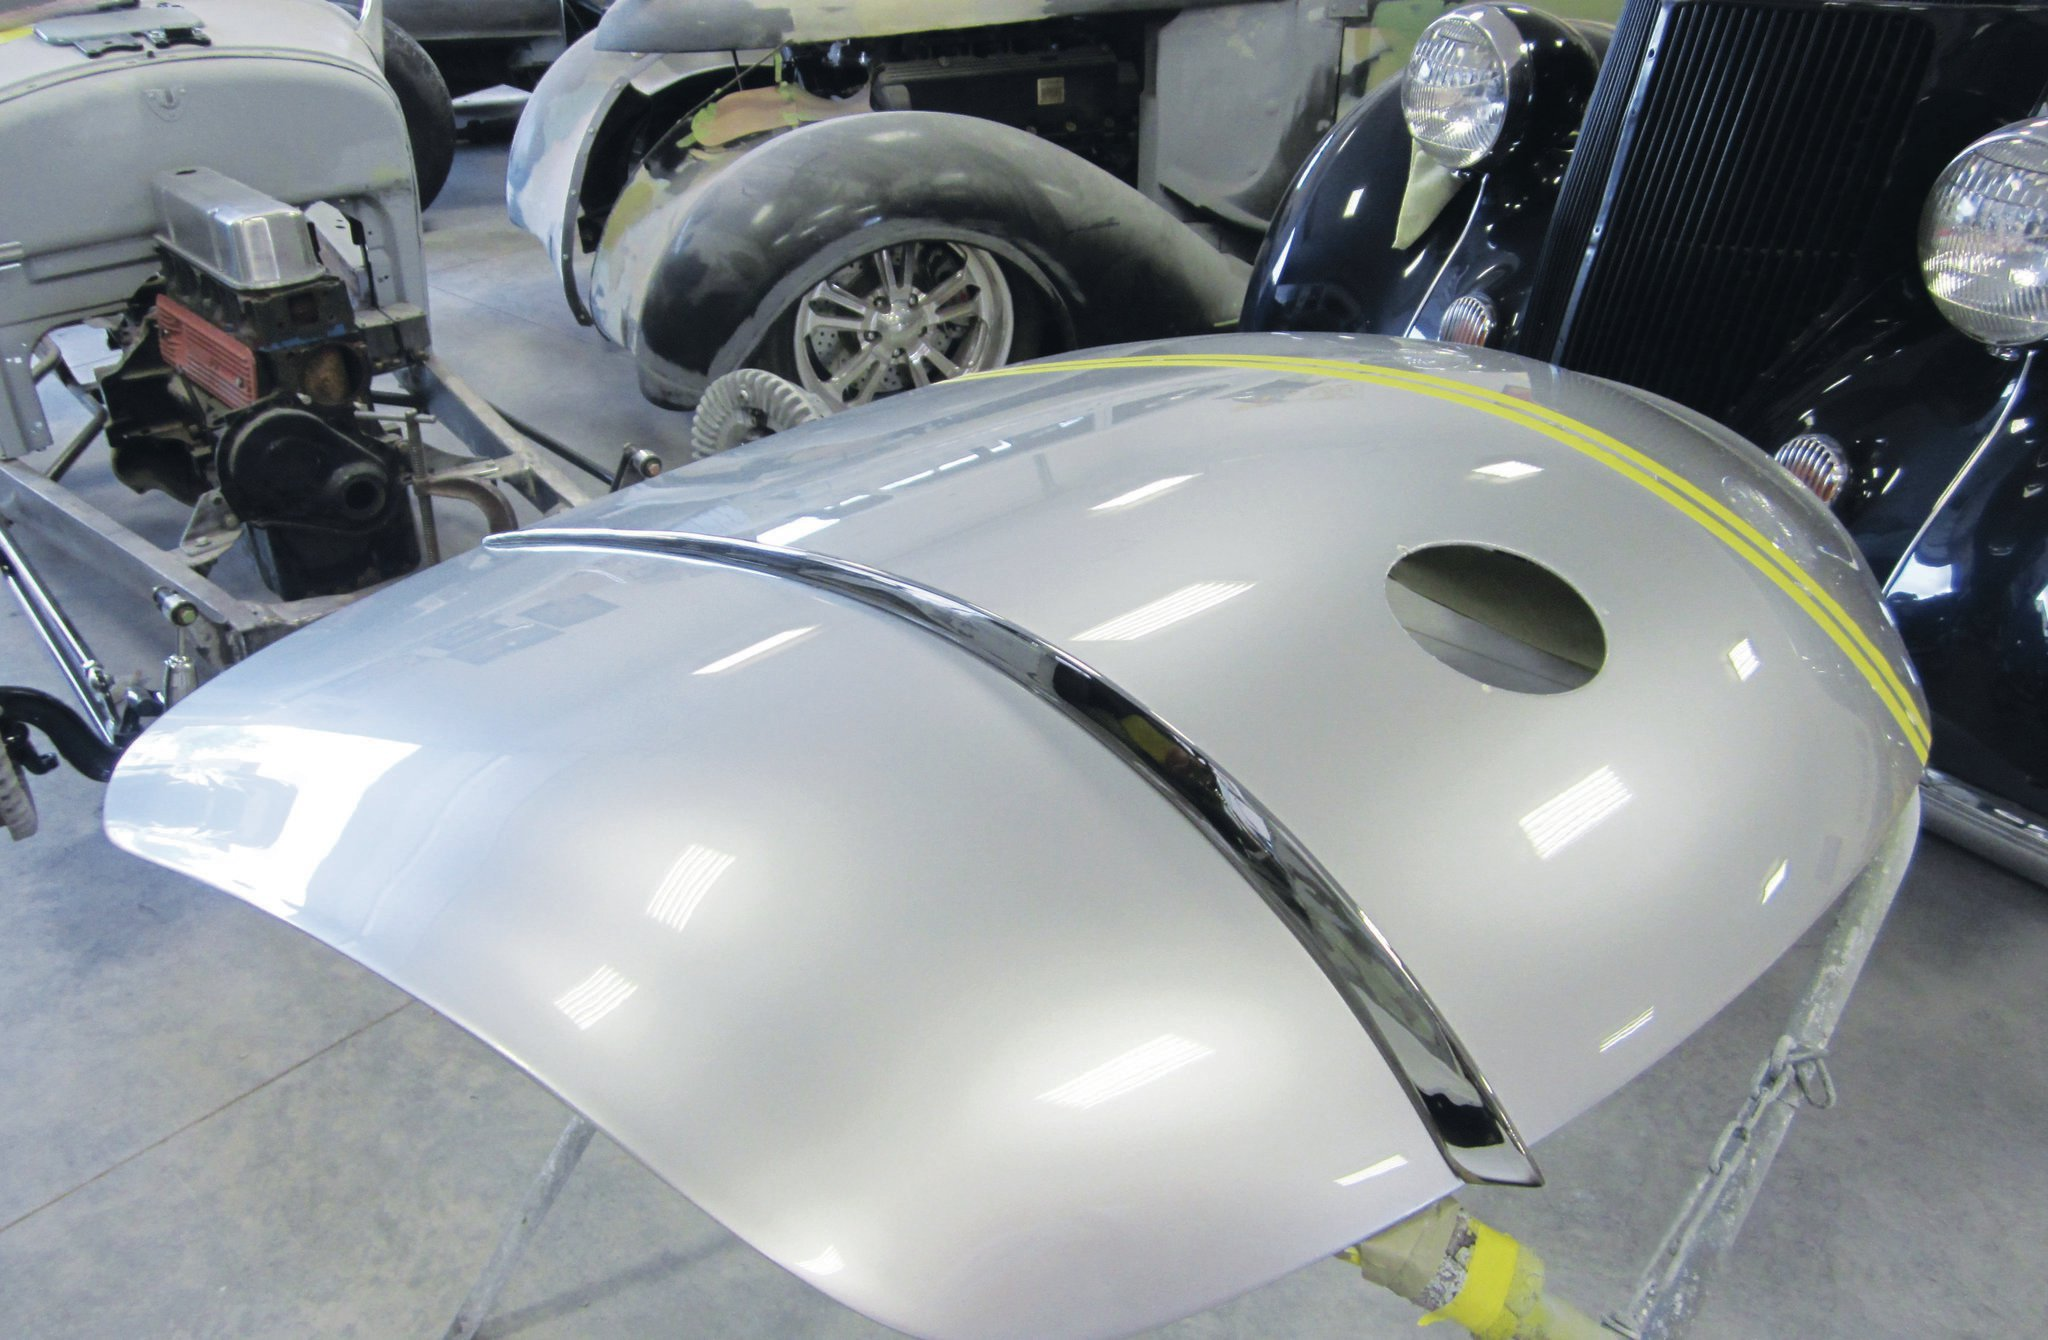 Clearcoat is on and assembly begins. Those chrome fins are one of the distinguishing features that separate the 1958 Corvette from its similar 1959–1960 brethren.